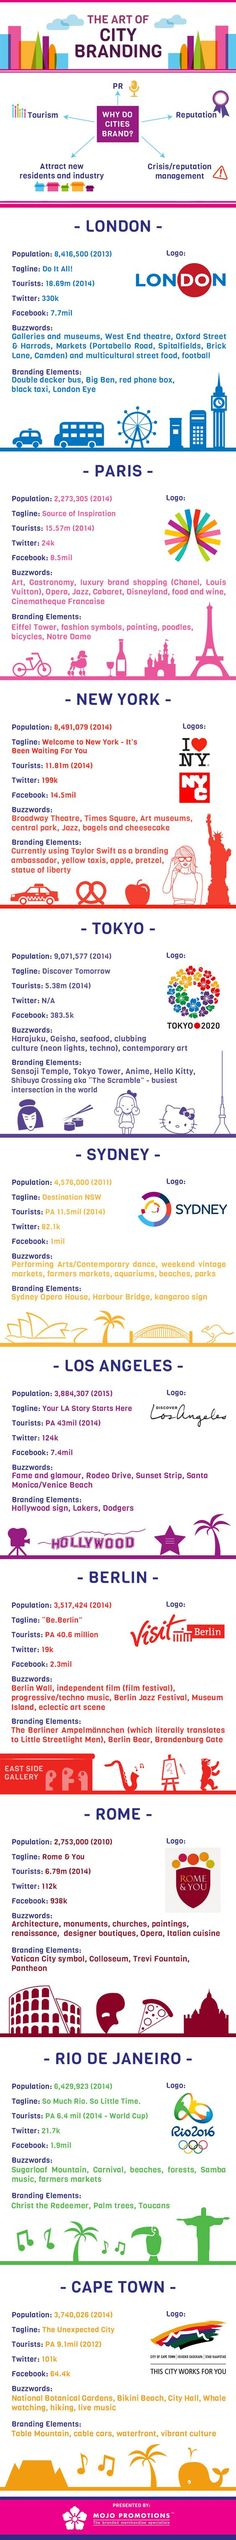 The Art of City Branding #infographic